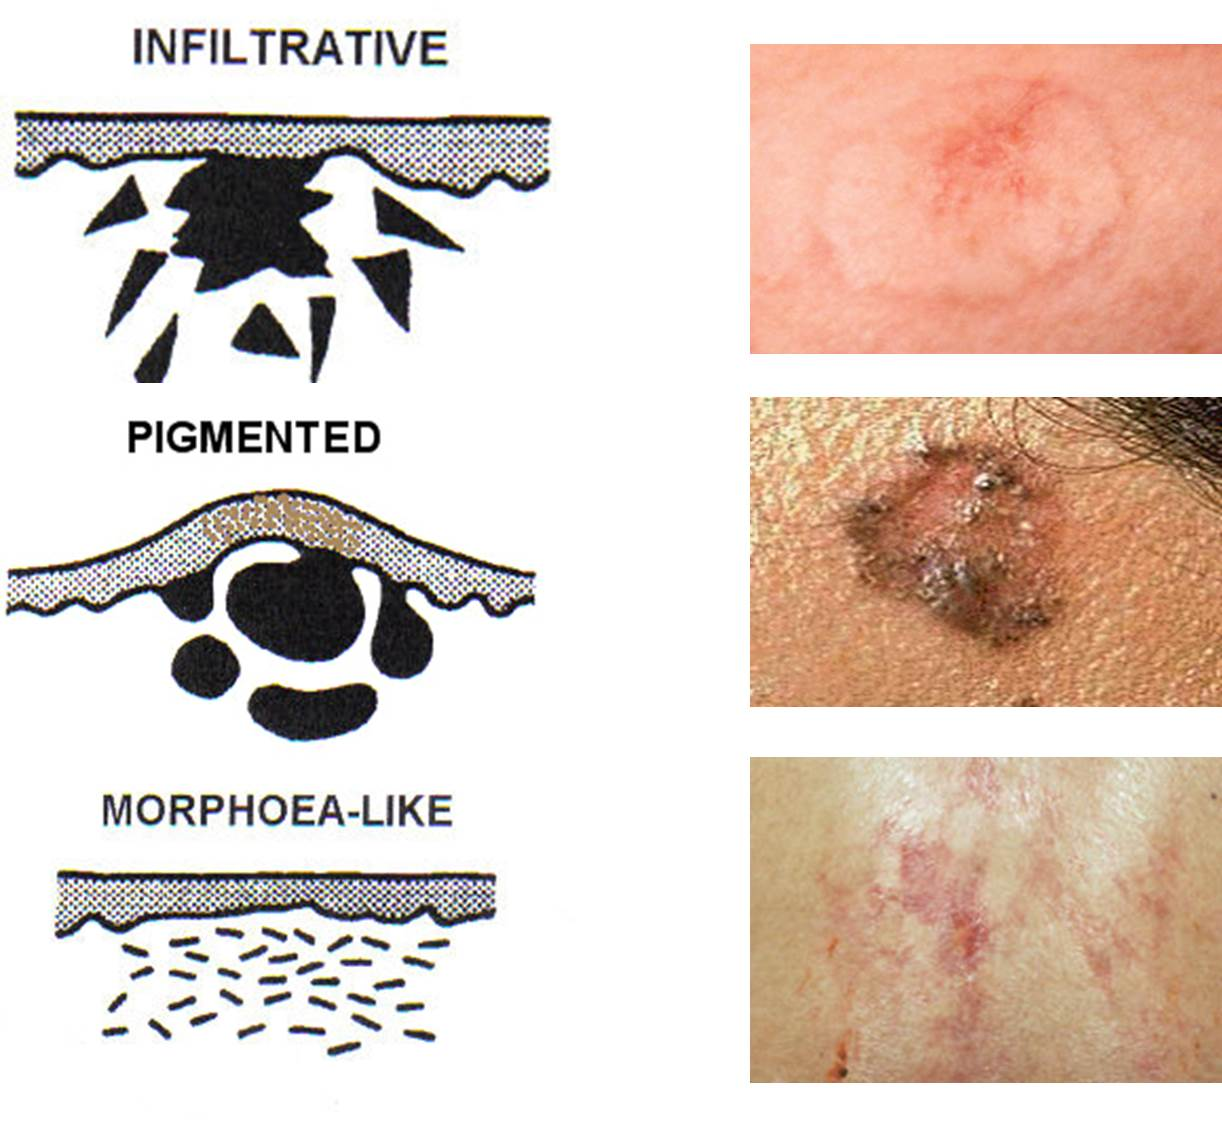 Clinical variants of Basal cell carcinoma (BCC)